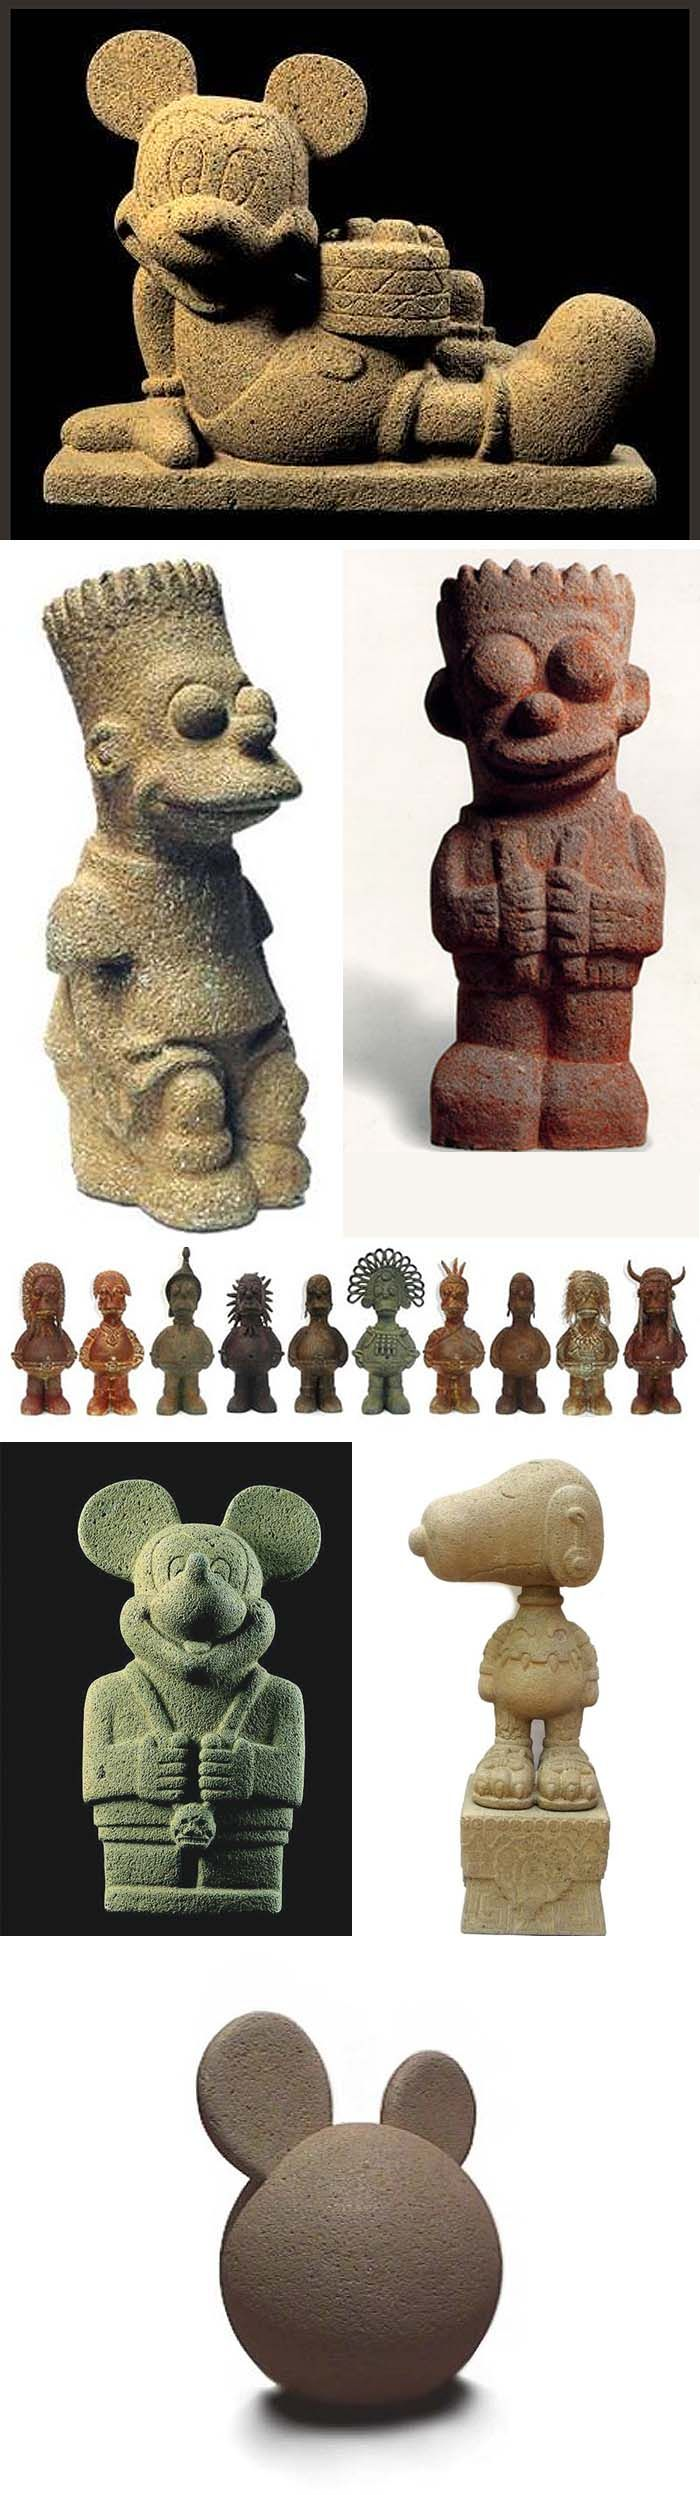 Nadin Ospina- the fusion of Pre-Columbian, Meso American sculpture and modern art